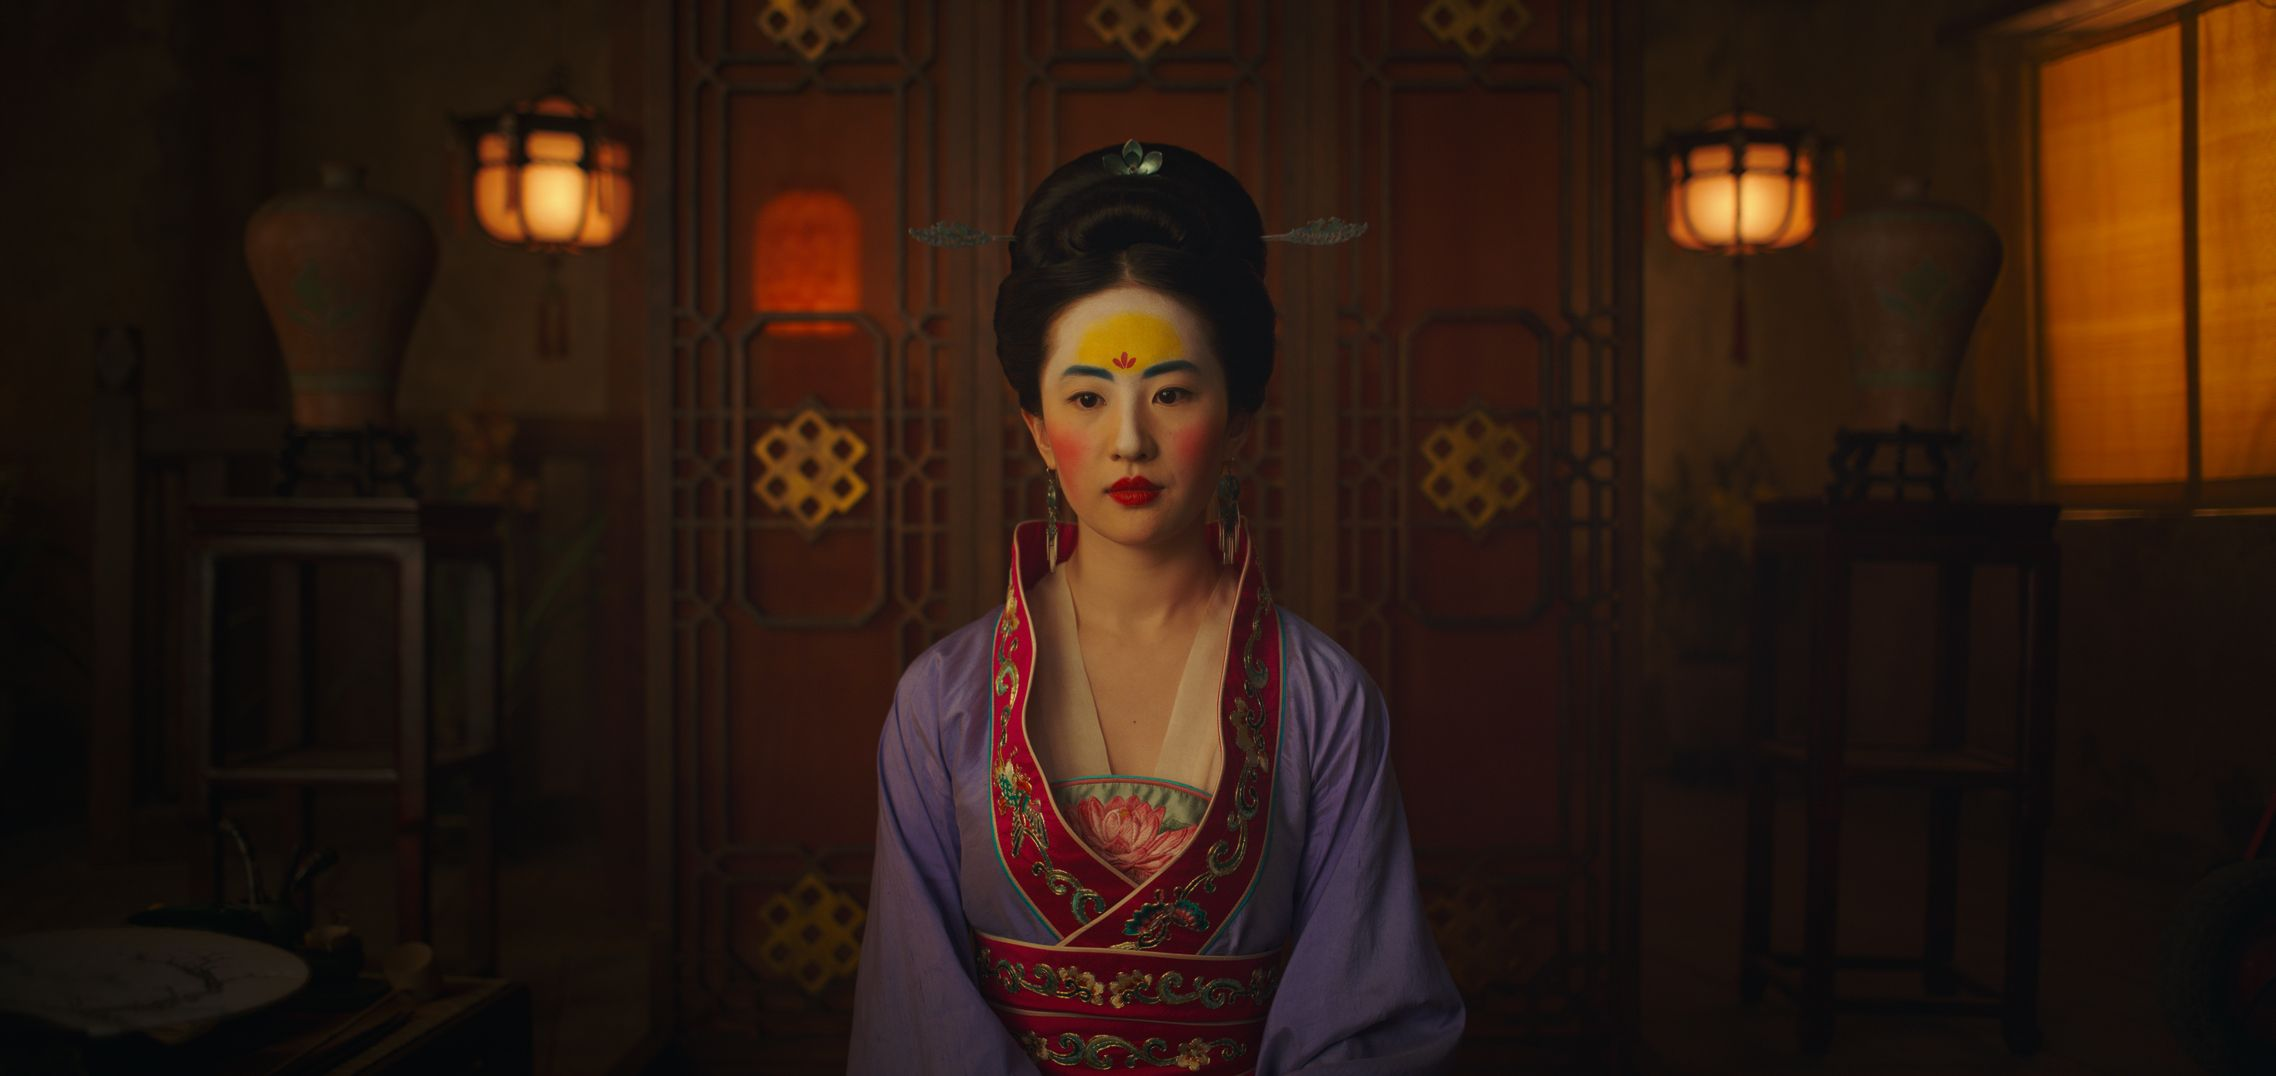 Disney Live Action Remake Mulan Unveils 14 New Images Poster Collider